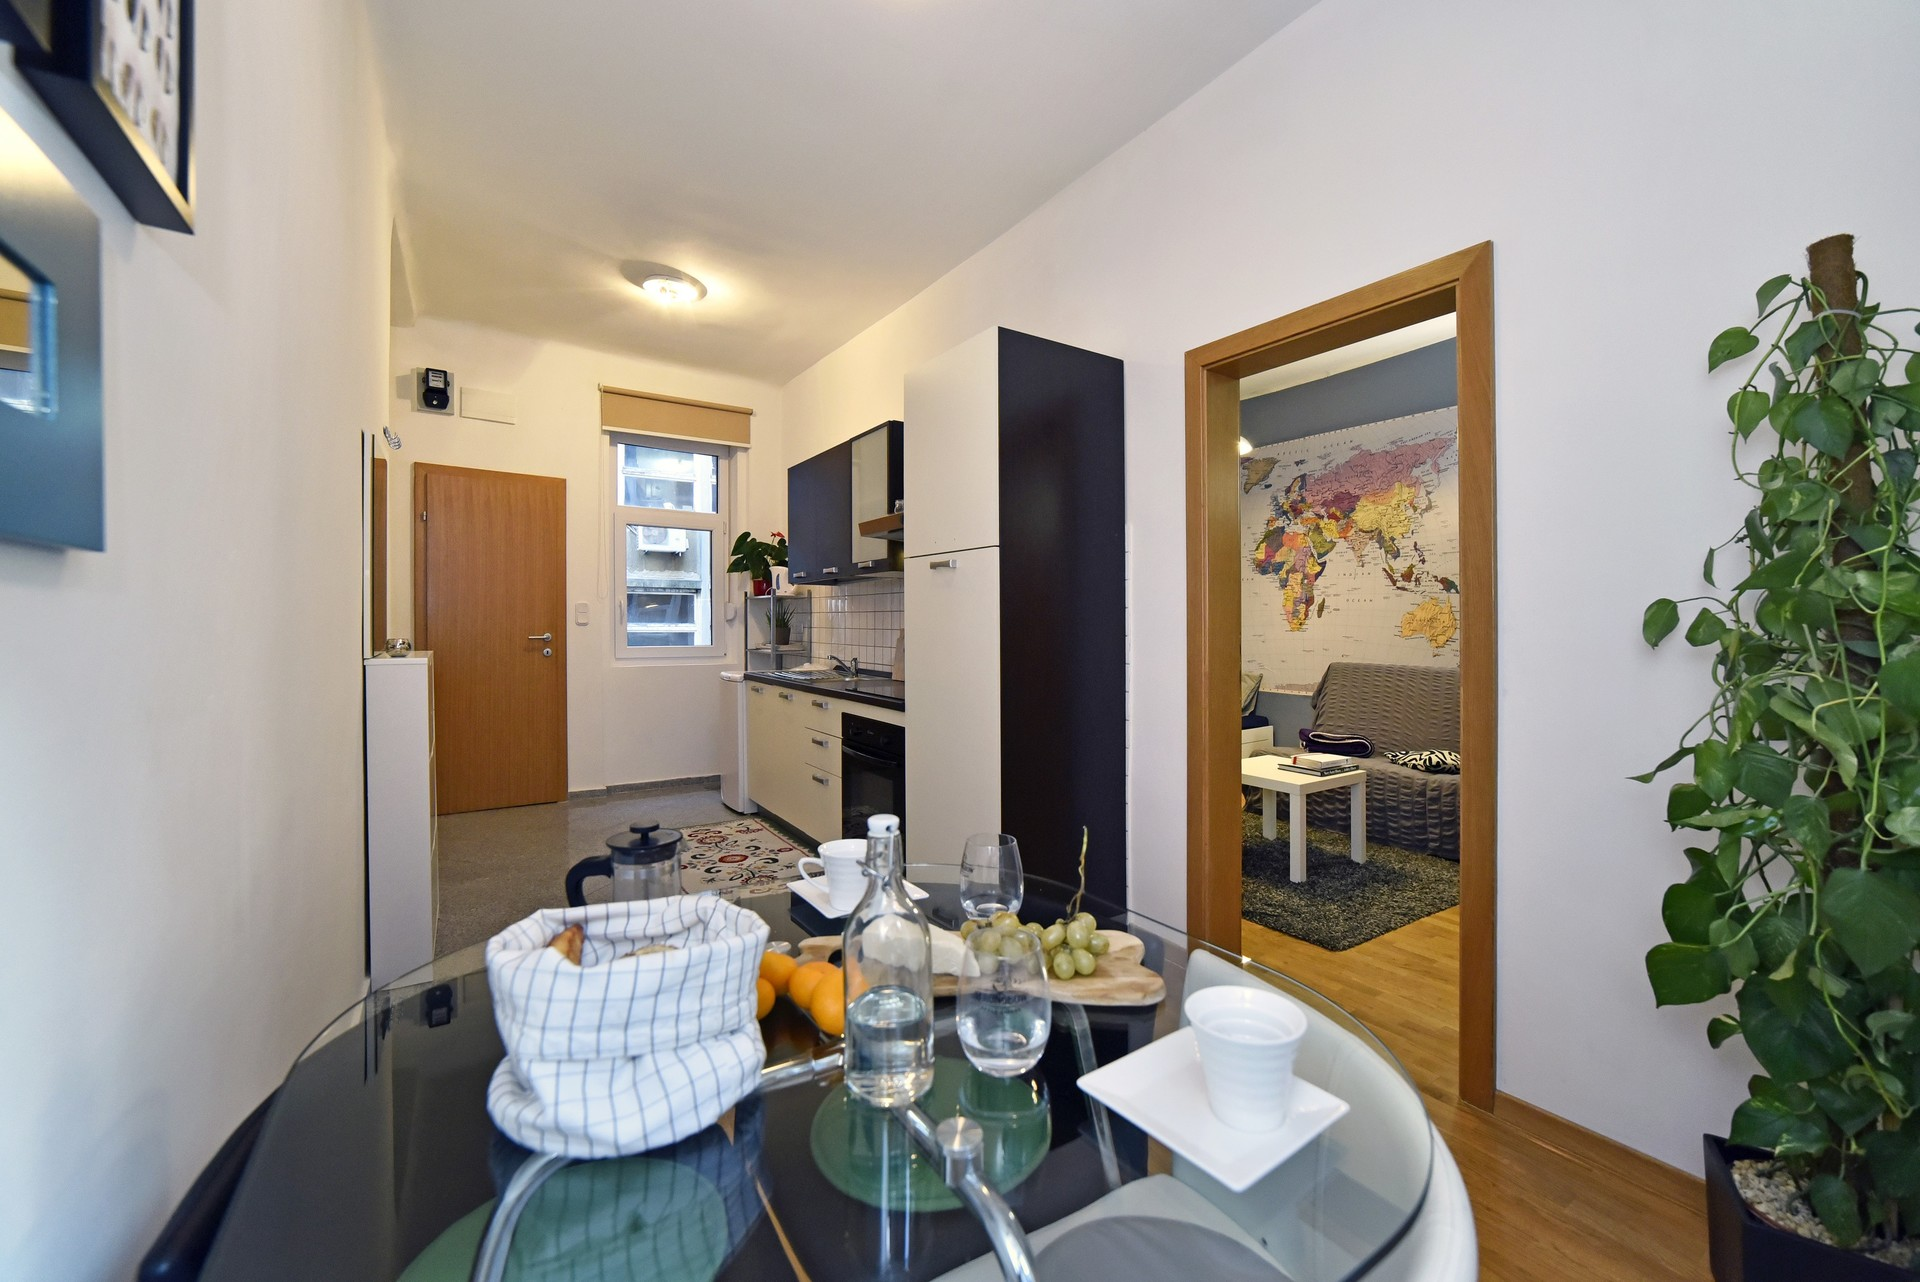 Cozy 1BR in the center 2 min from main square